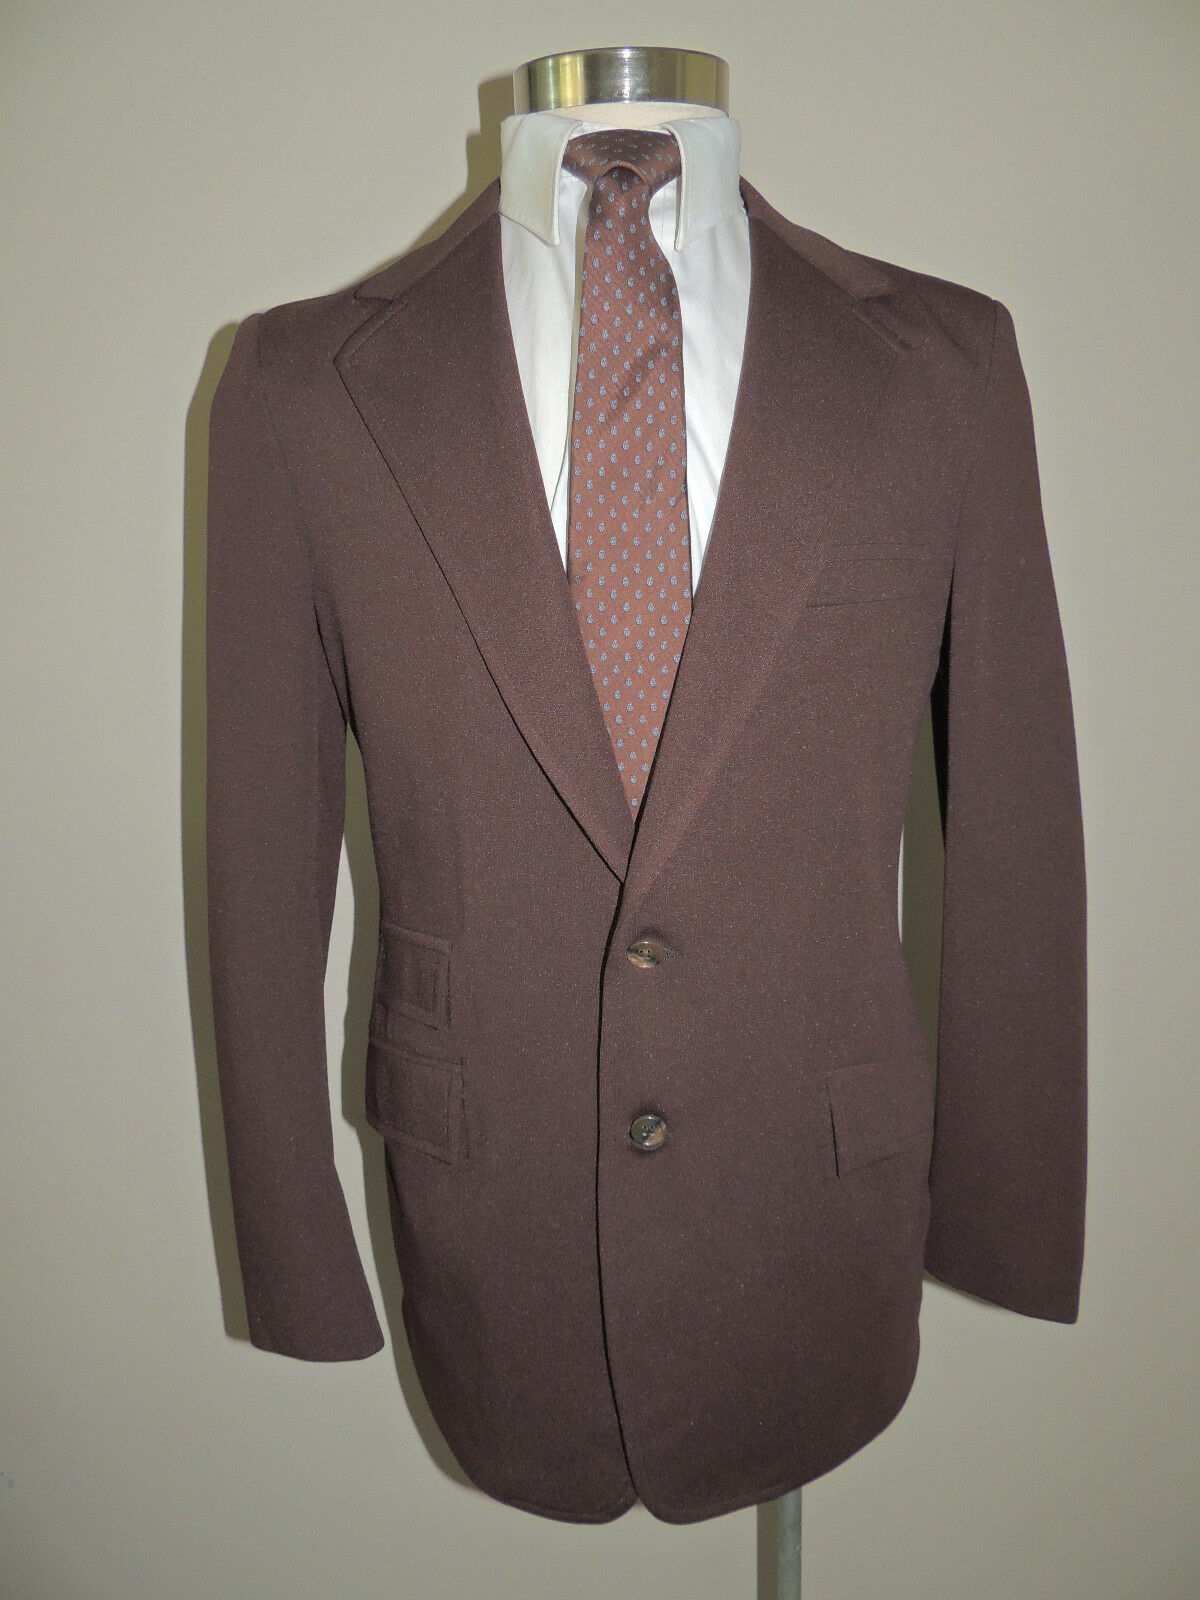 VTG JOHN BLAIR BROWN POLY BLEND 2 BUTTON 2 PIECE SUIT 37R